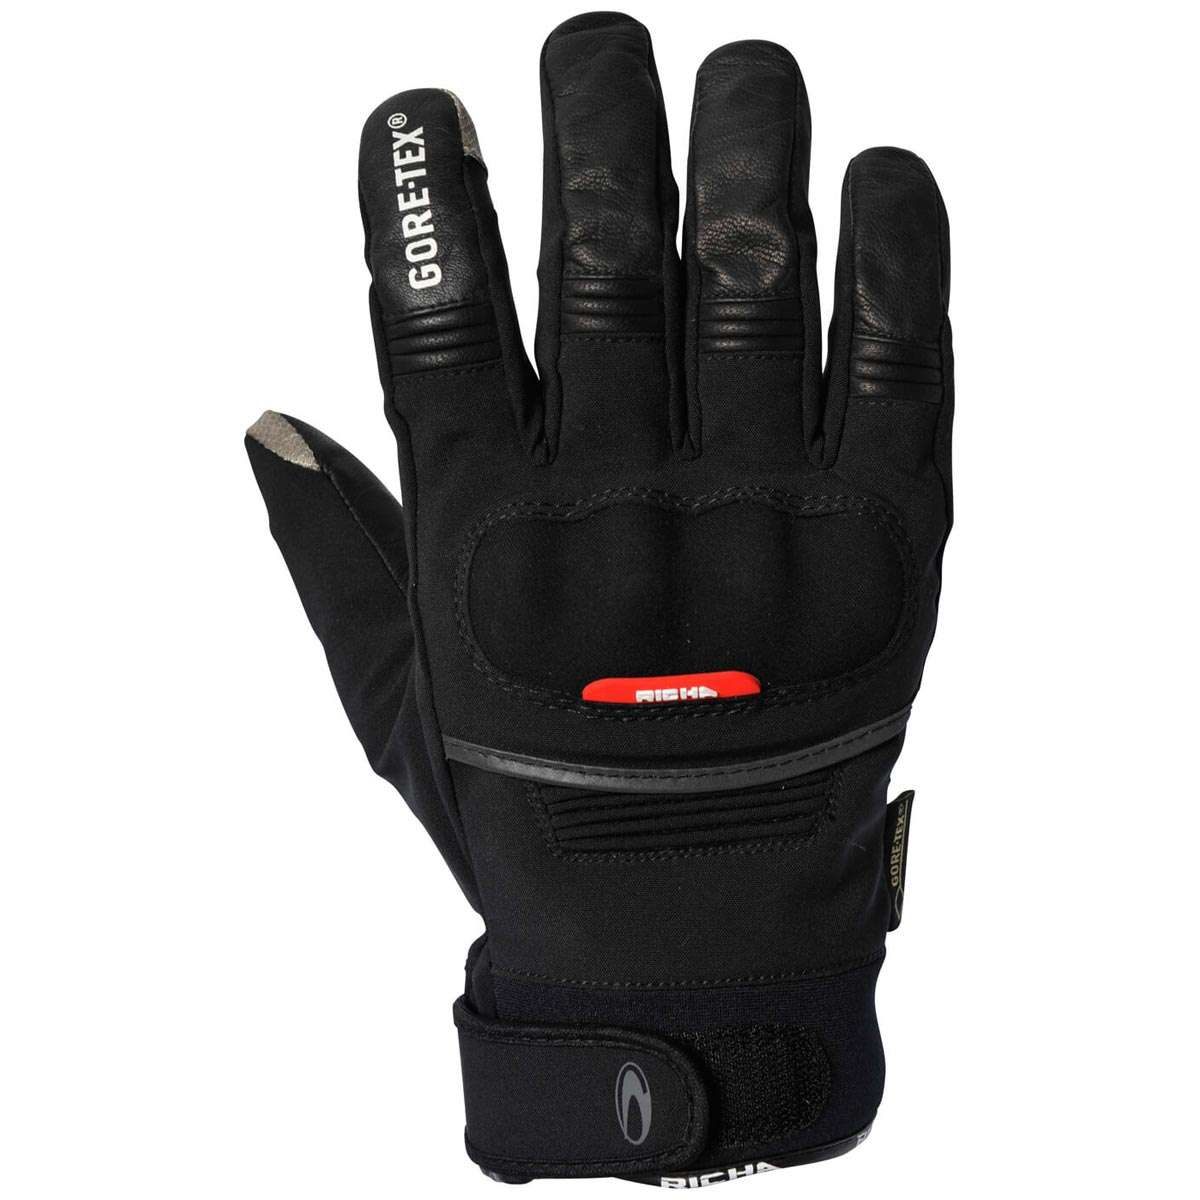 Richa City Urban Winter Motorcycle Gloves